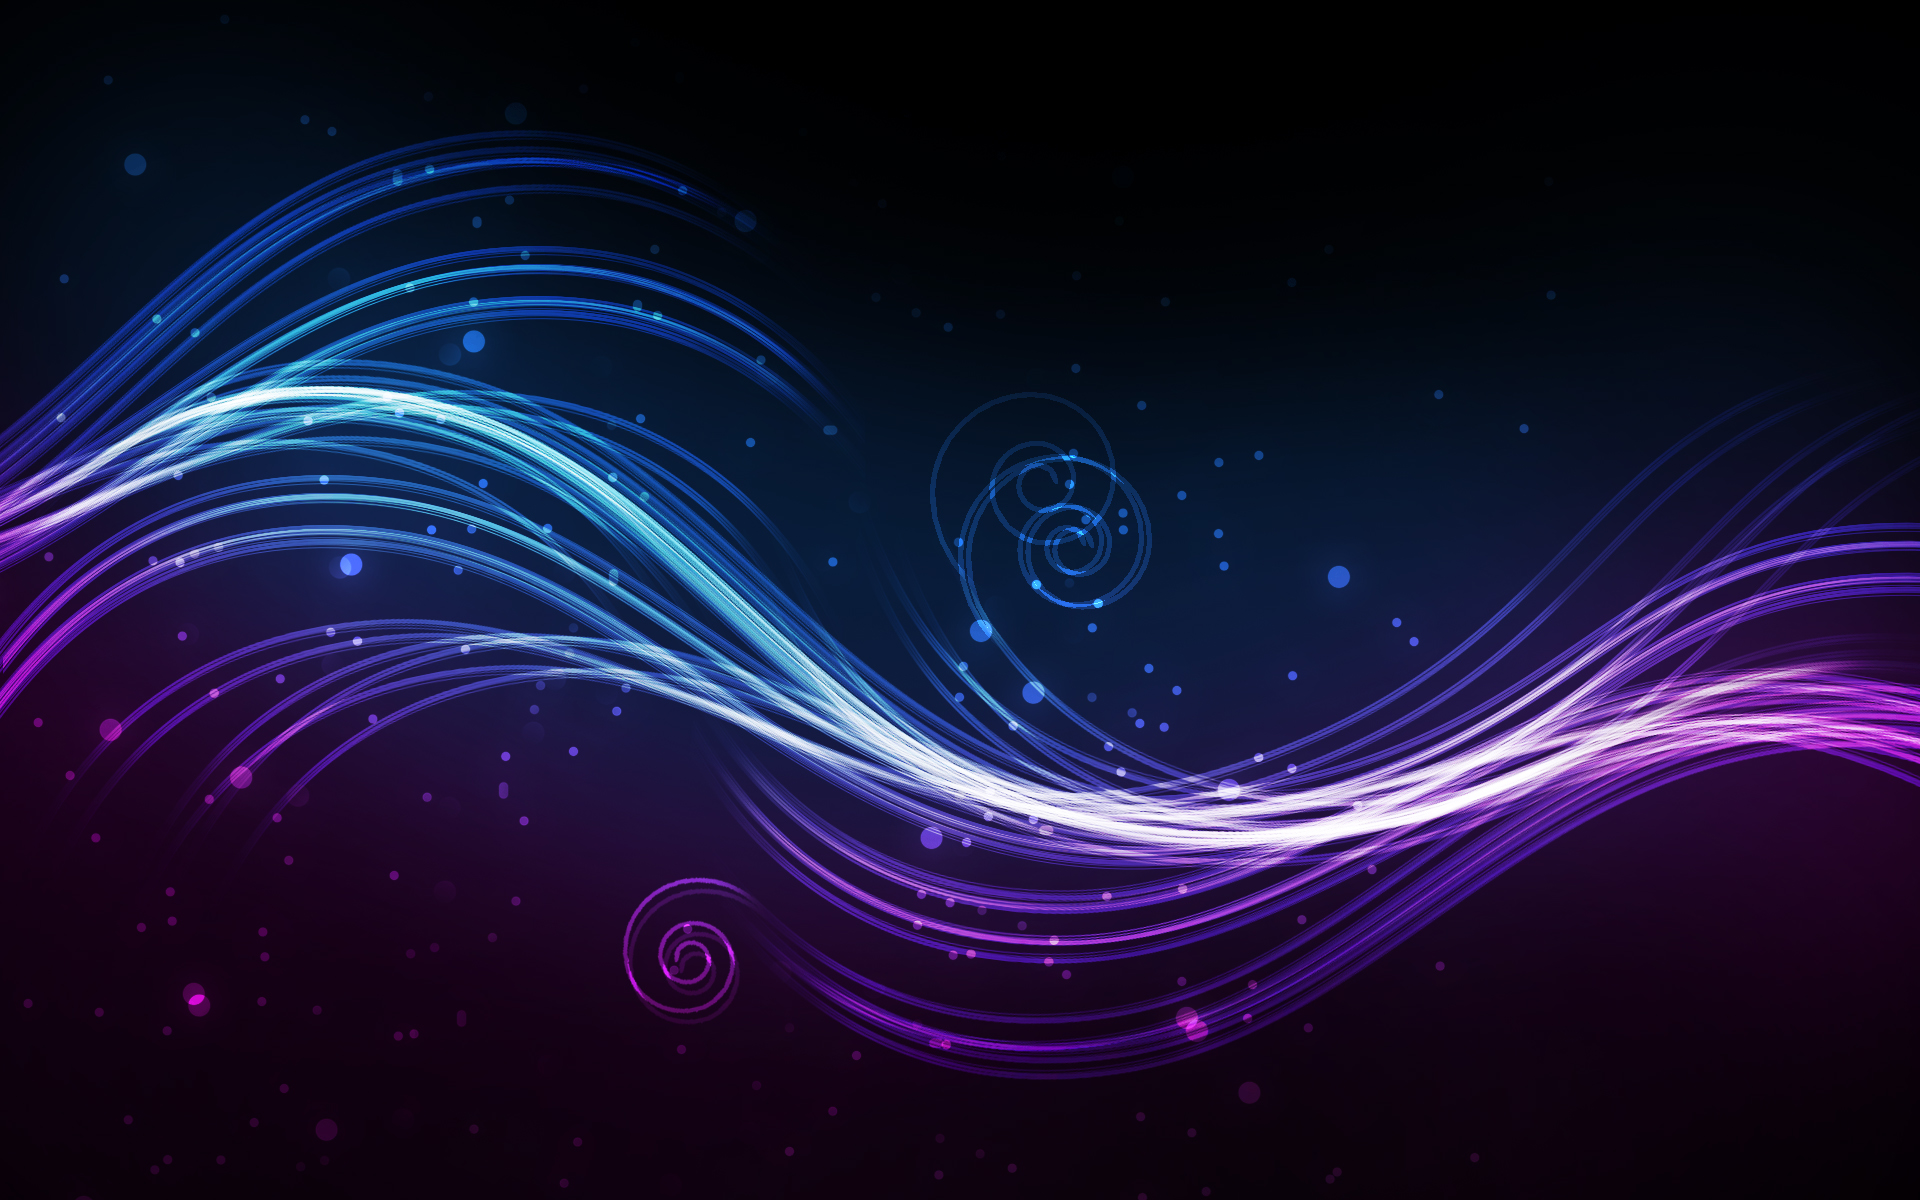 Get colorful backgrounds for your desktop and give it a more 1920x1200